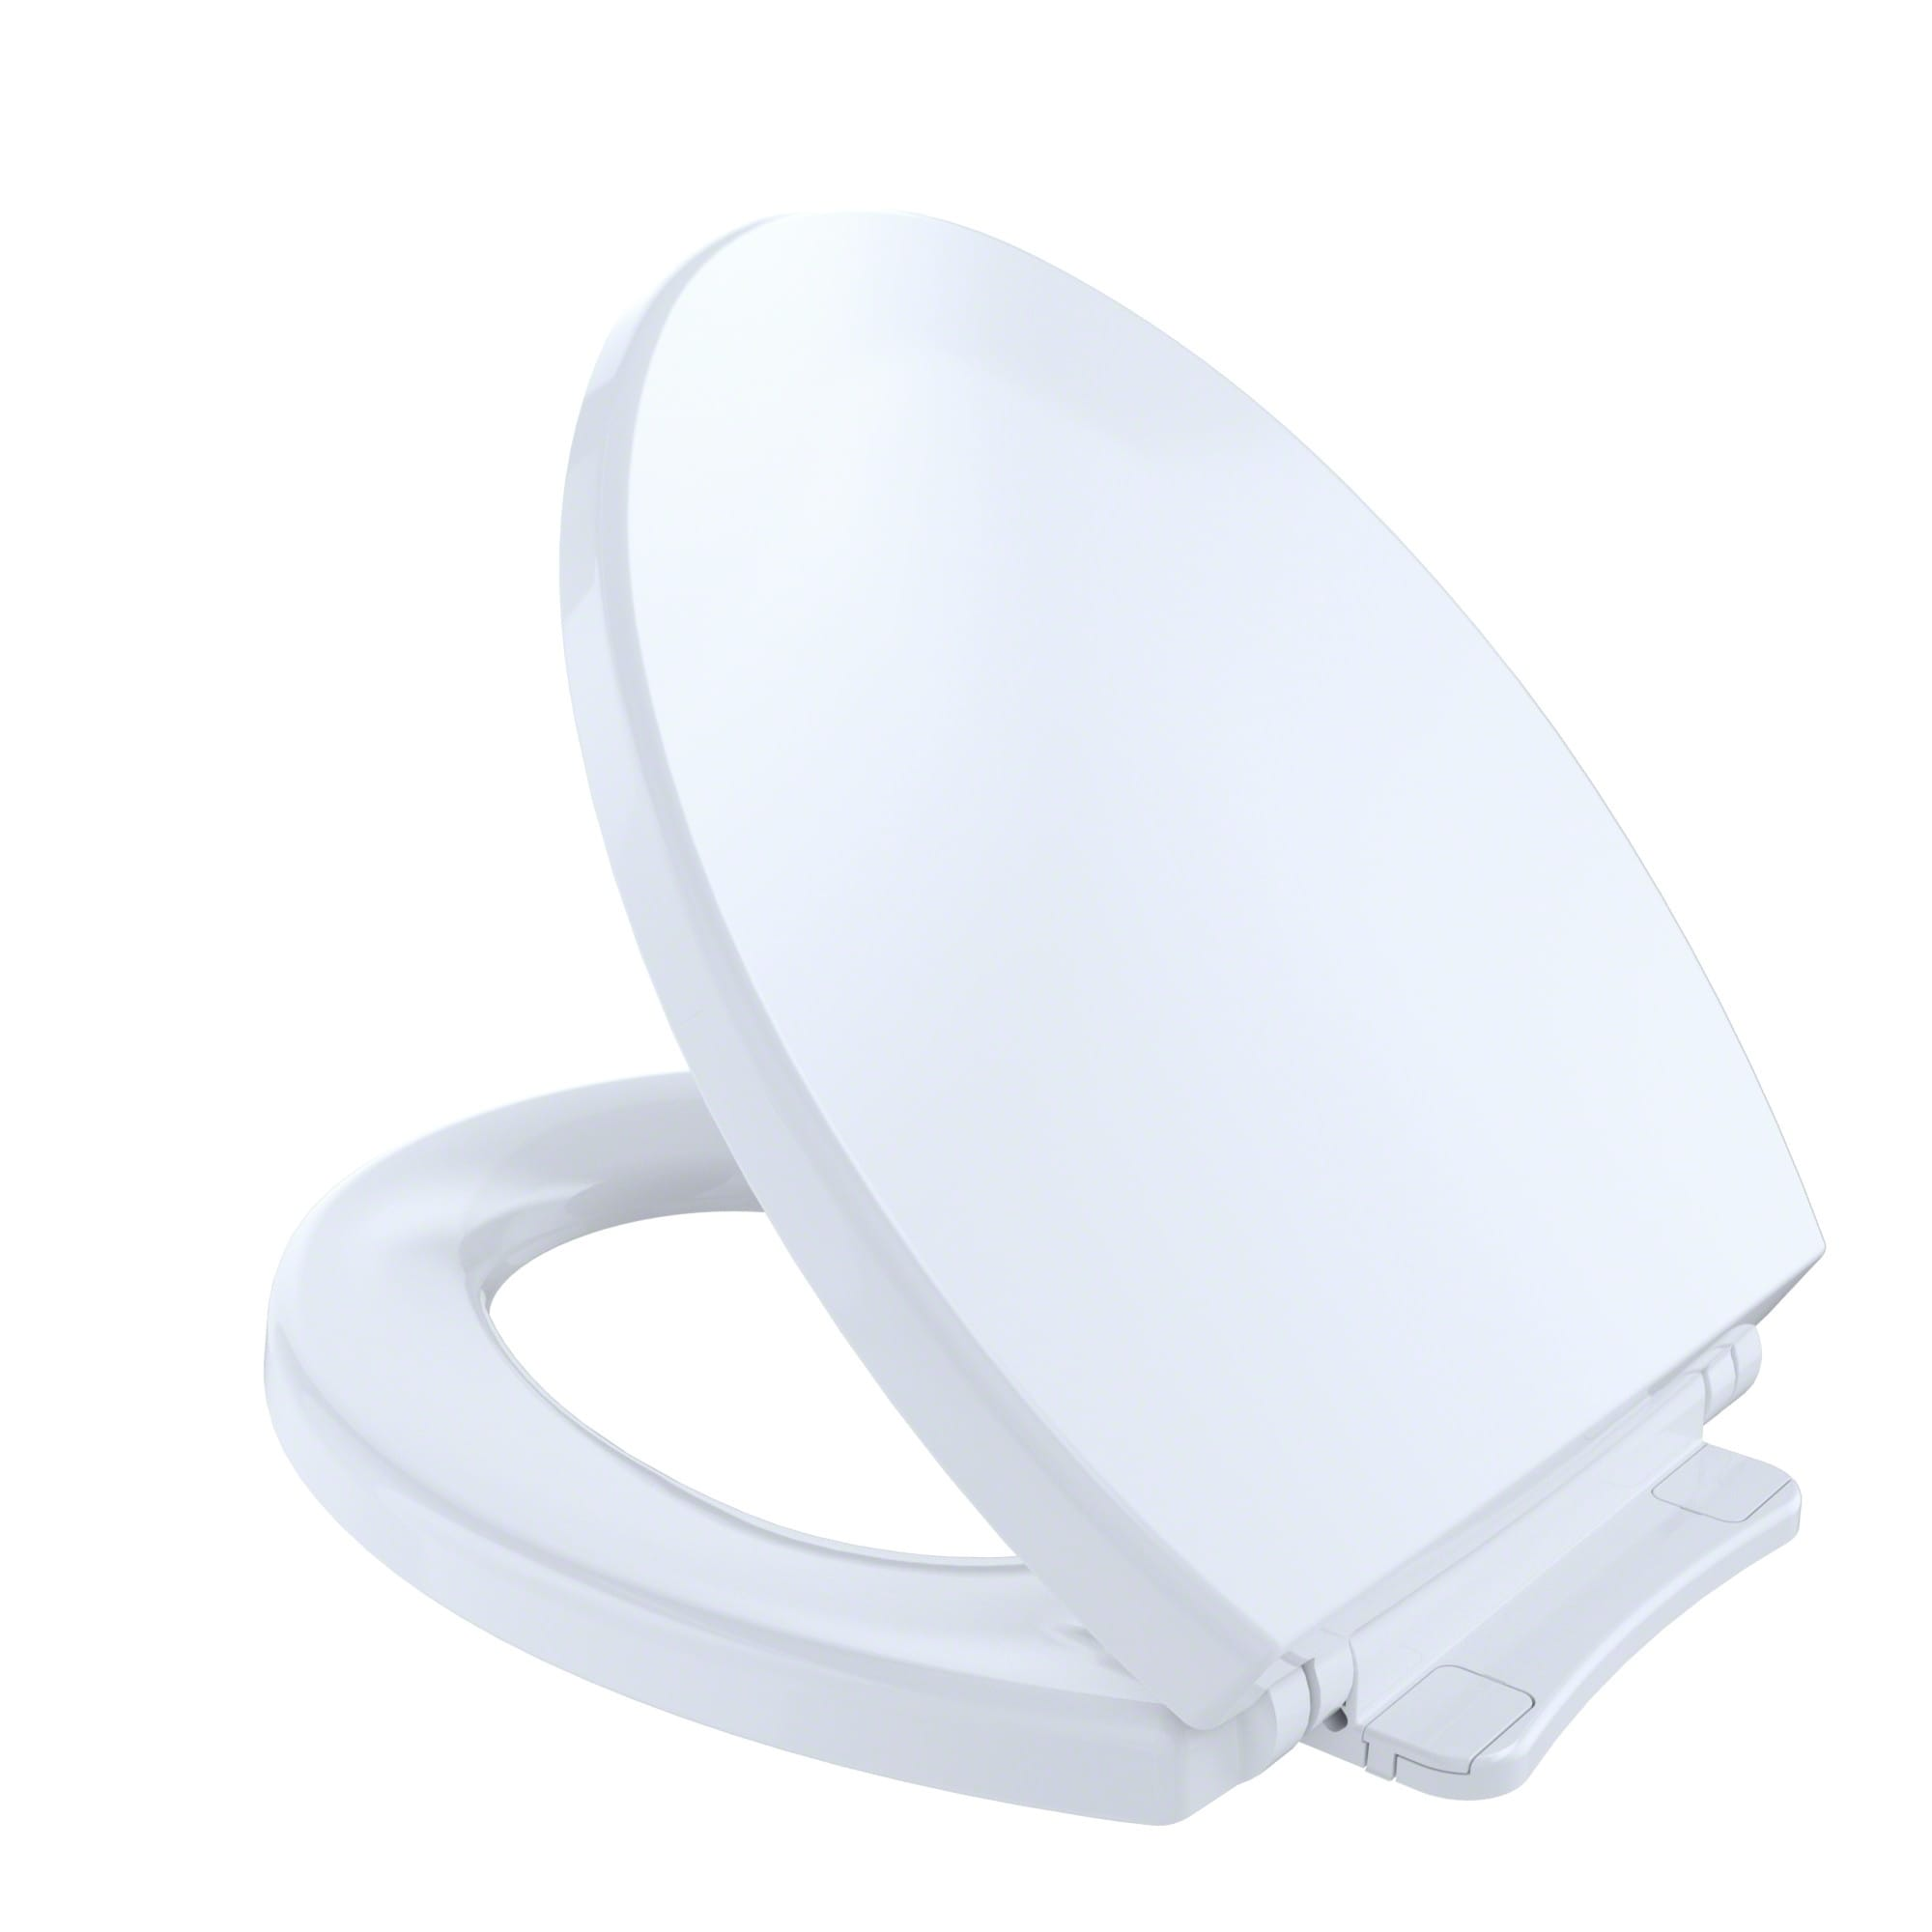 You Can Find A Selection Of Soft Close Toilet Seats Including The One In Video By Fol